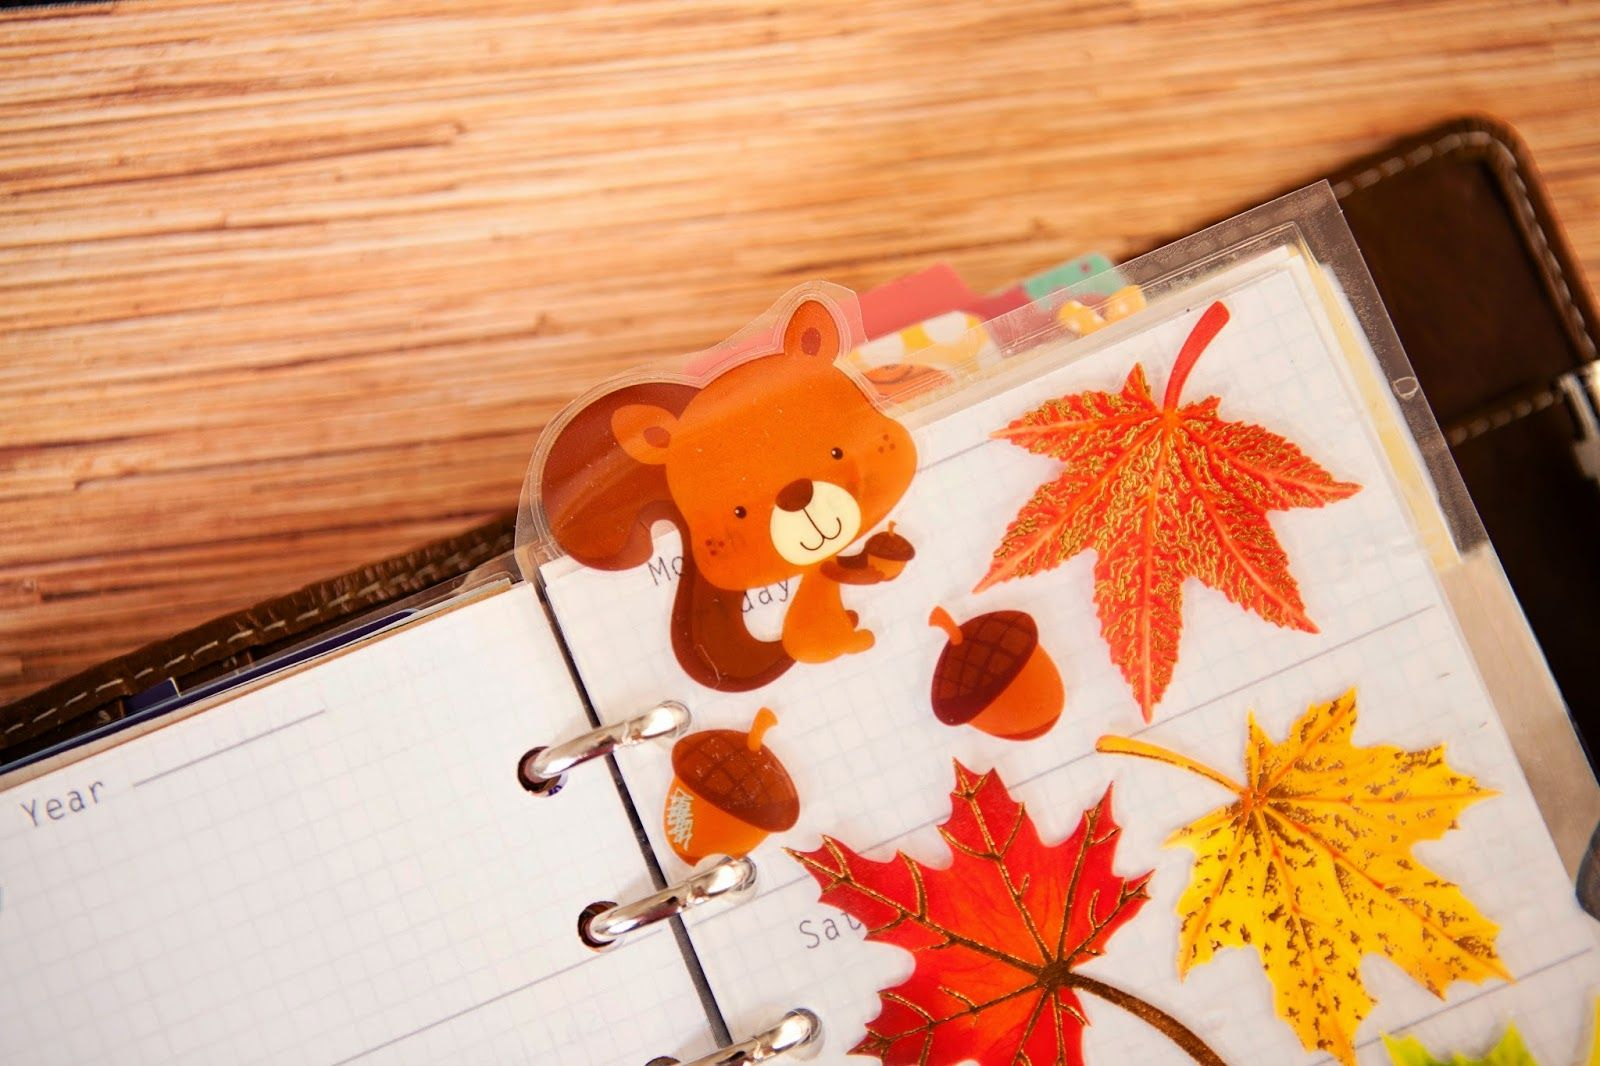 Squirrels in the leaves - laminated stickers to make a flyleaf / pagemarker in my Filofax - mrsbrimbles.blogspot.com